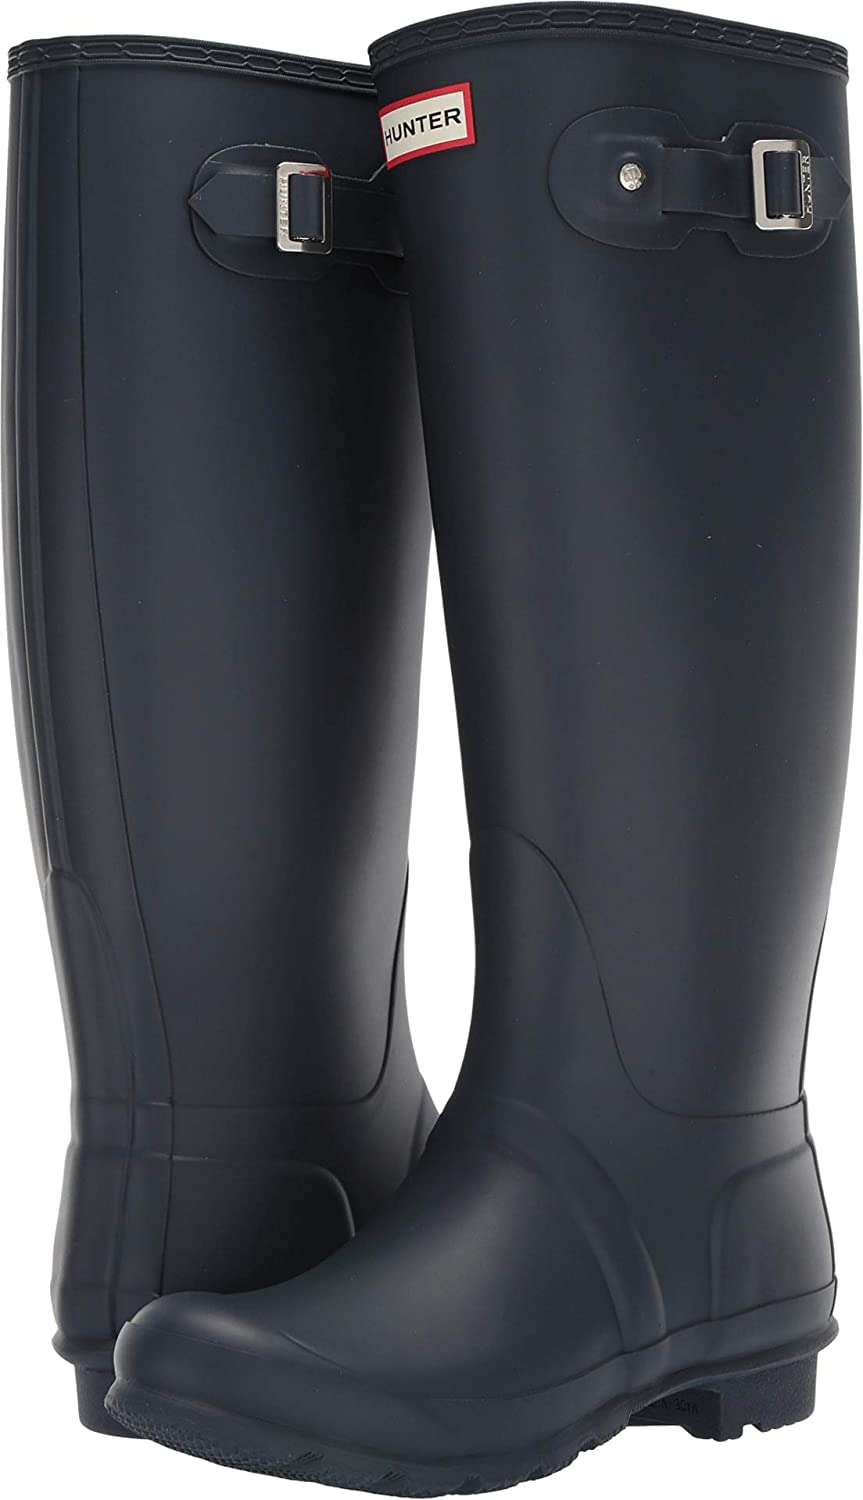 Navy Hunter Women's Original Tall Wide Leg Rain Boots Navy